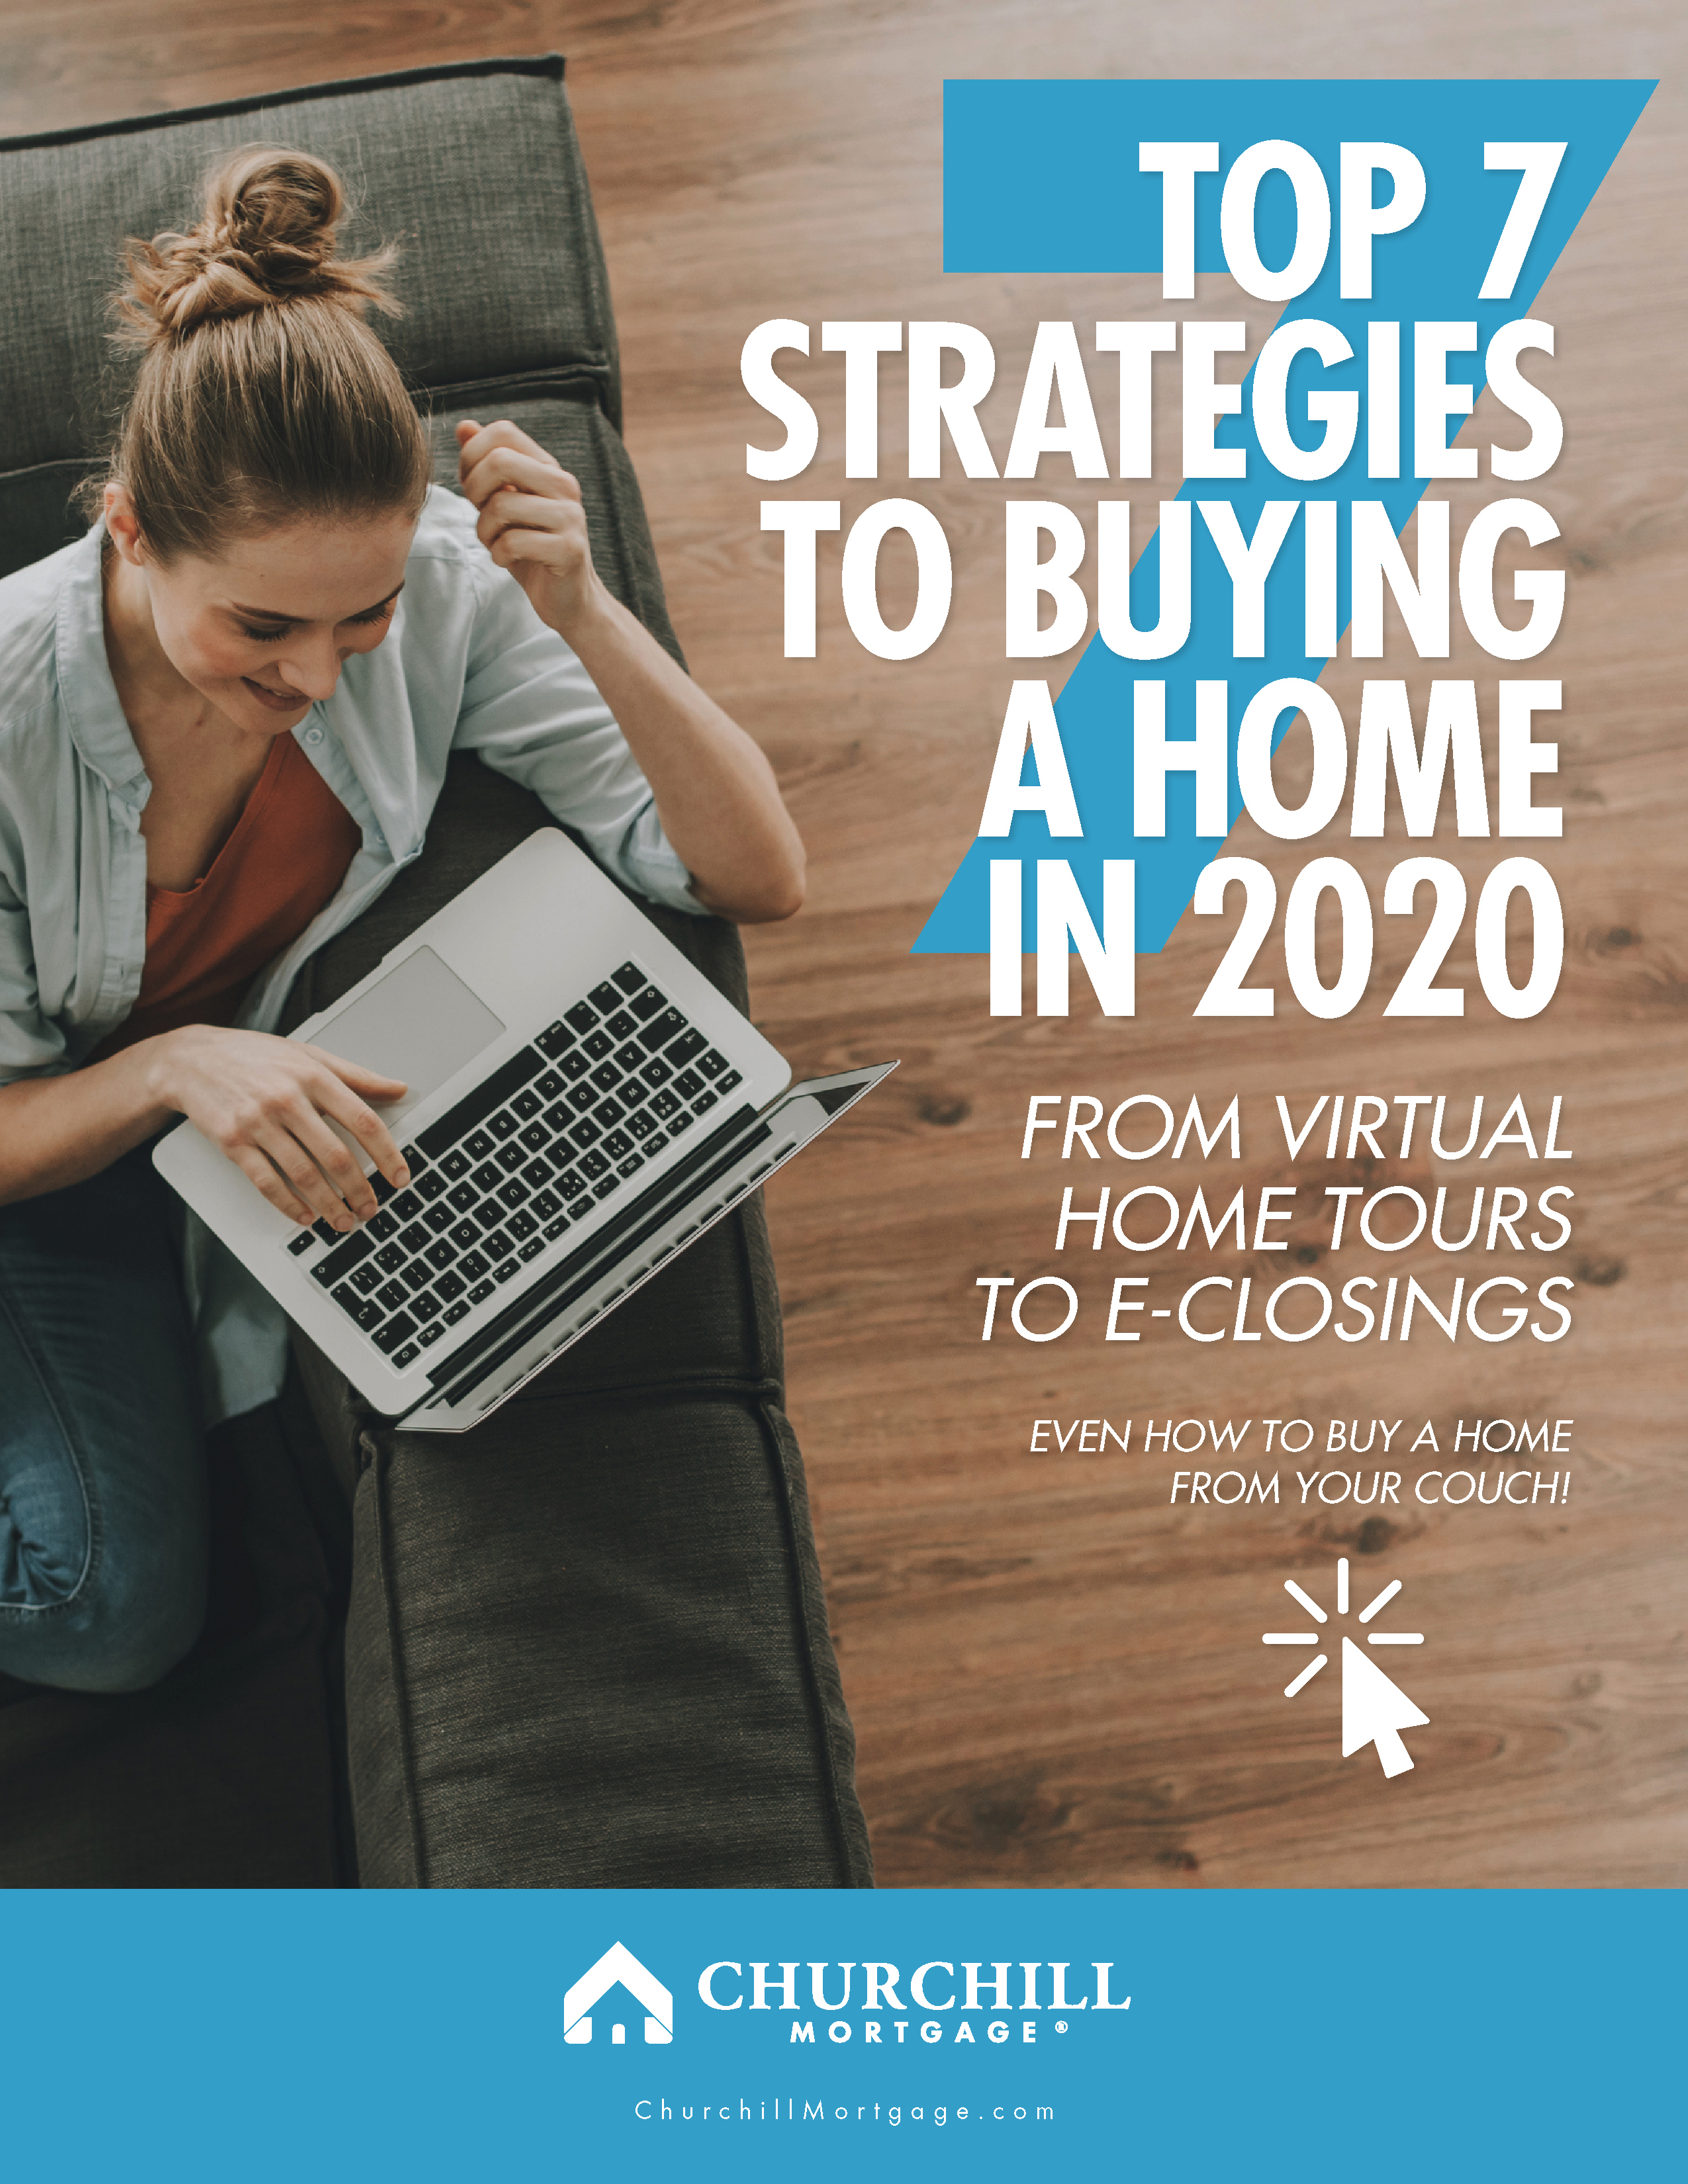 Buy a house from couch-Churchill-Mortgage-eBook_2020_FINAL